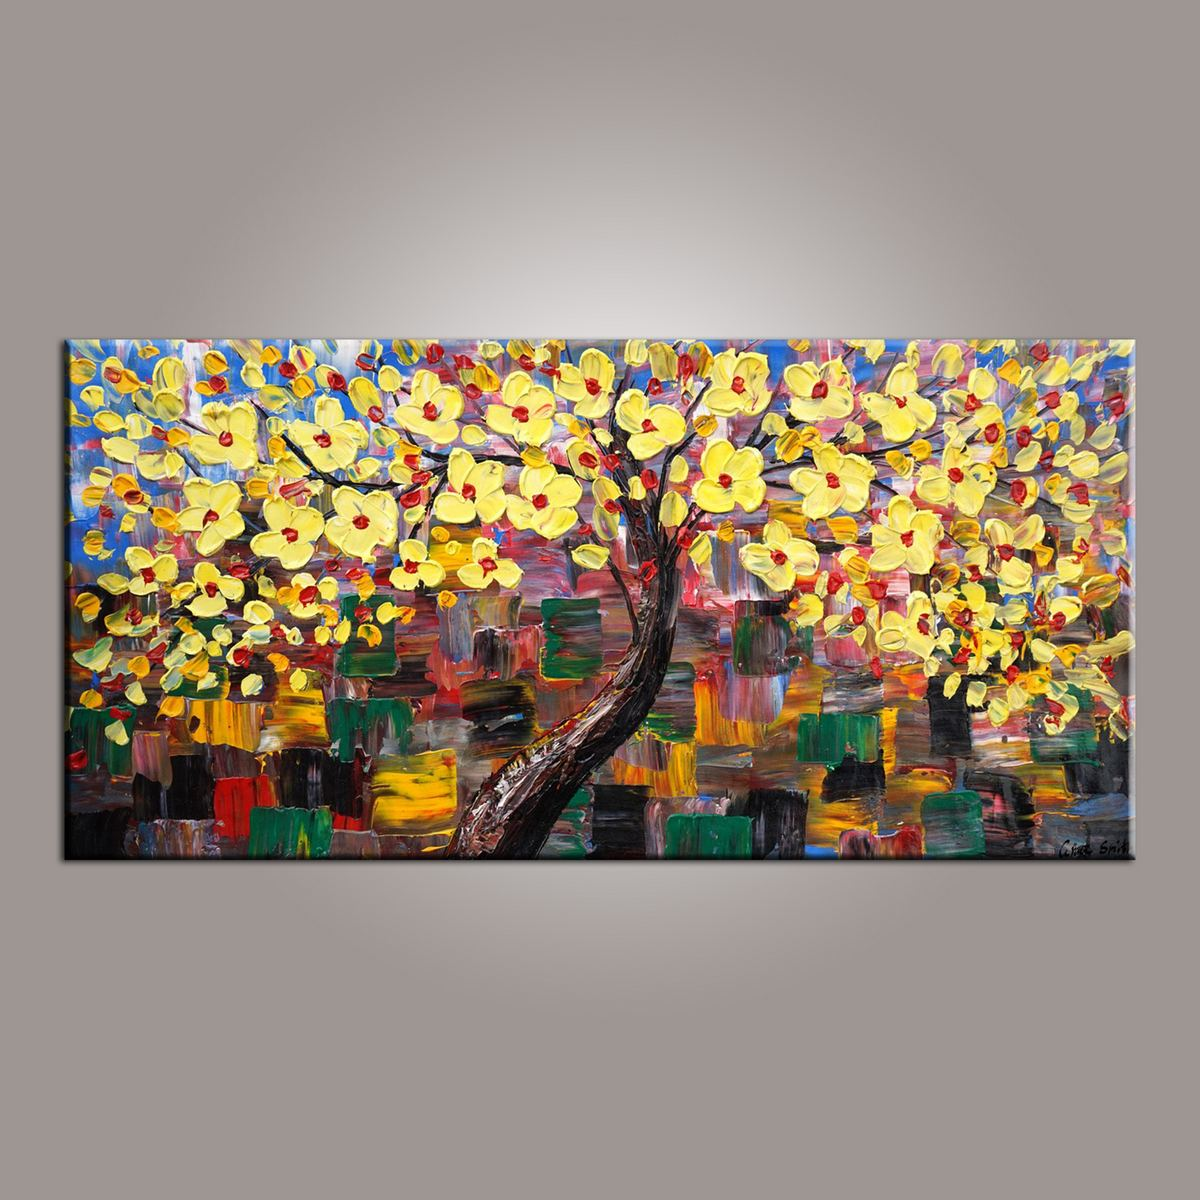 Flower Tree Painting, Canvas Wall Art, Abstract Art Painting, Painting on Sale, Dining Room Wall Art, Canvas Art, Modern Art, Contemporary Art